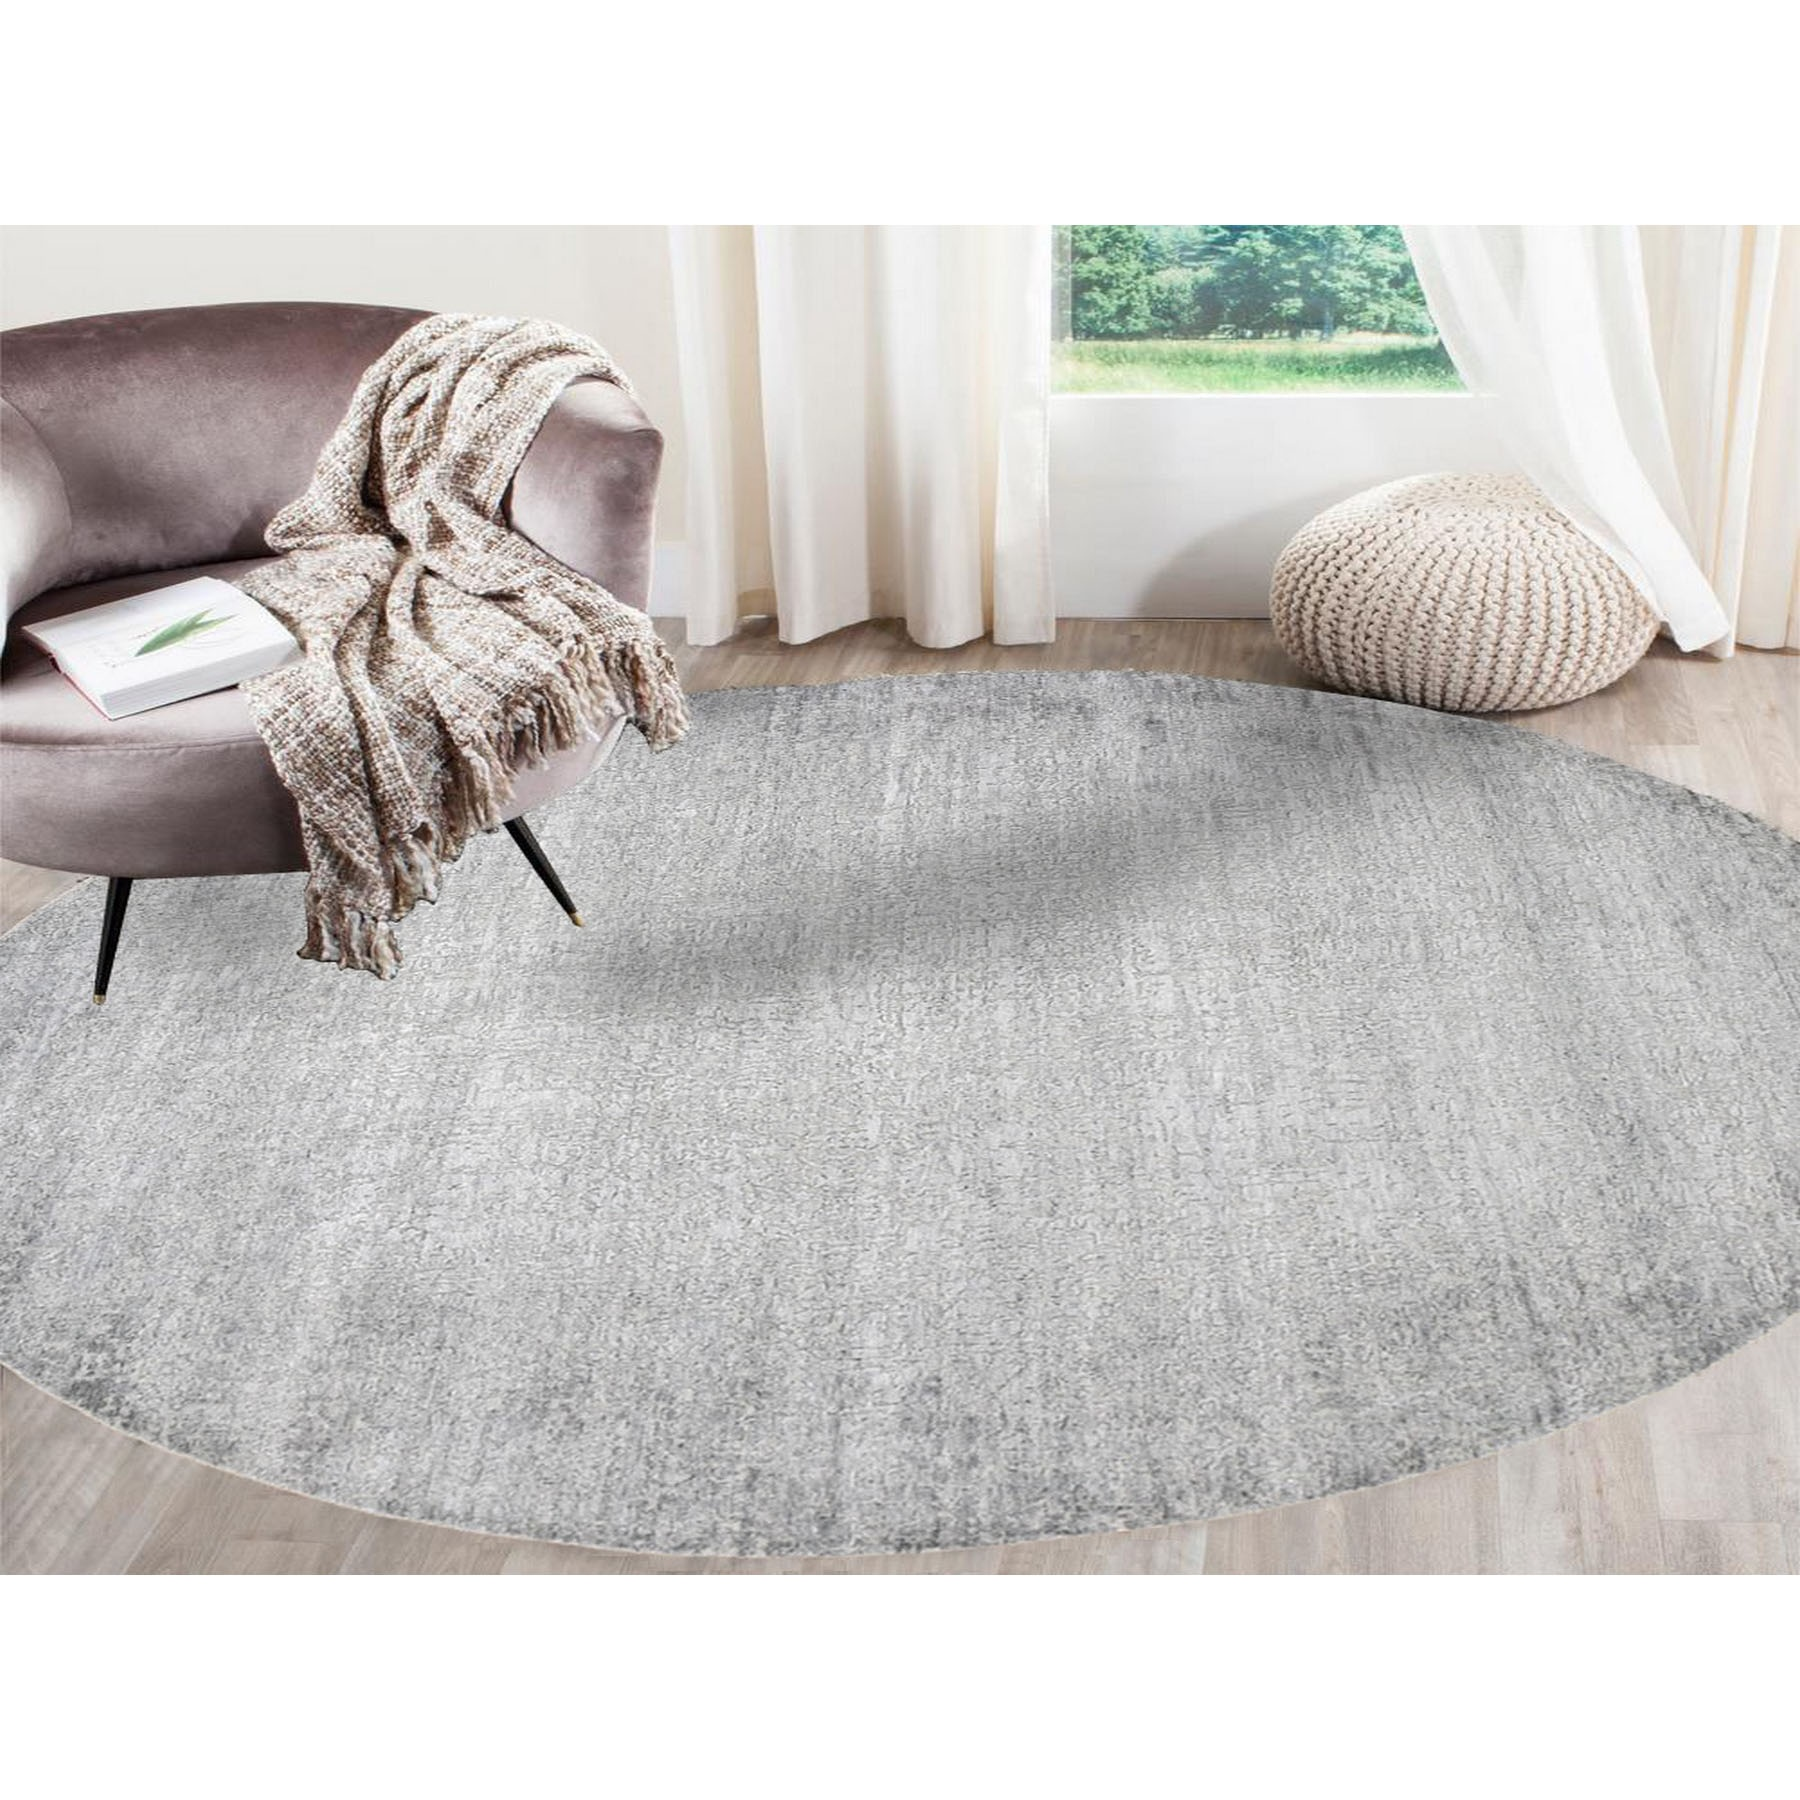 8'x8' Gray Round Tone On Tone Wool And Silk Hand Knotted Oriental Rug